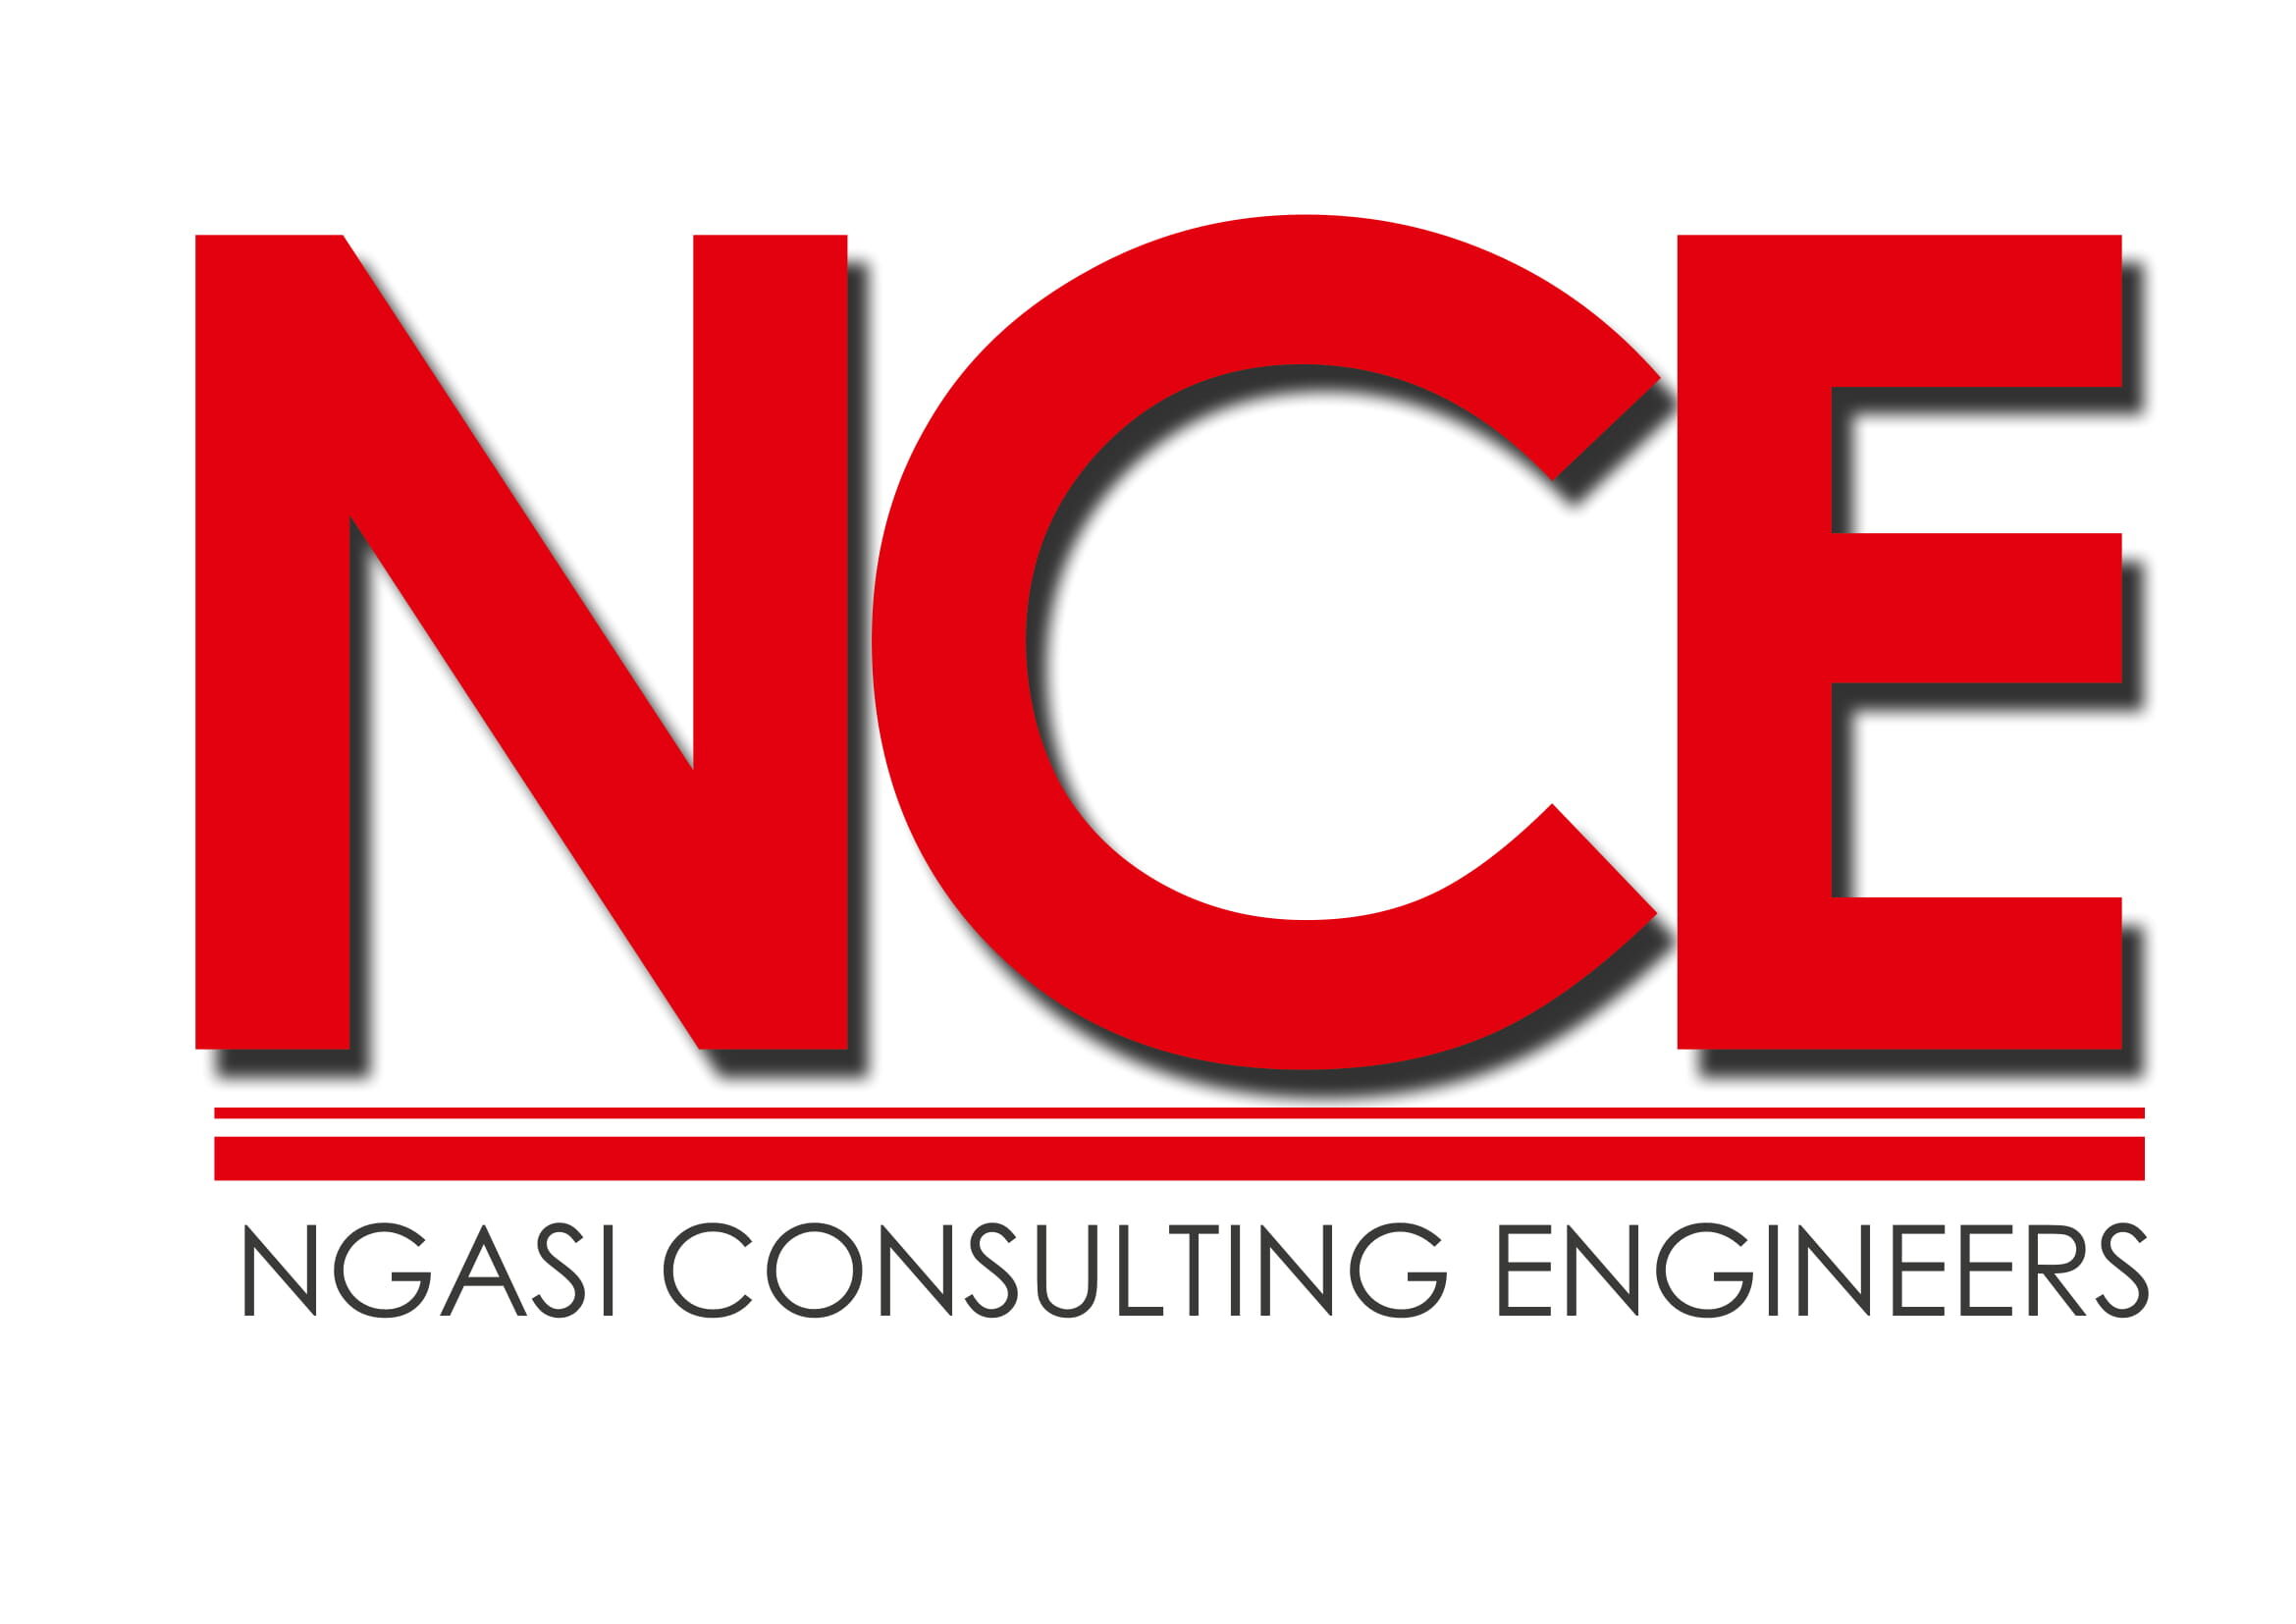 Ngasi Consulting Engineers